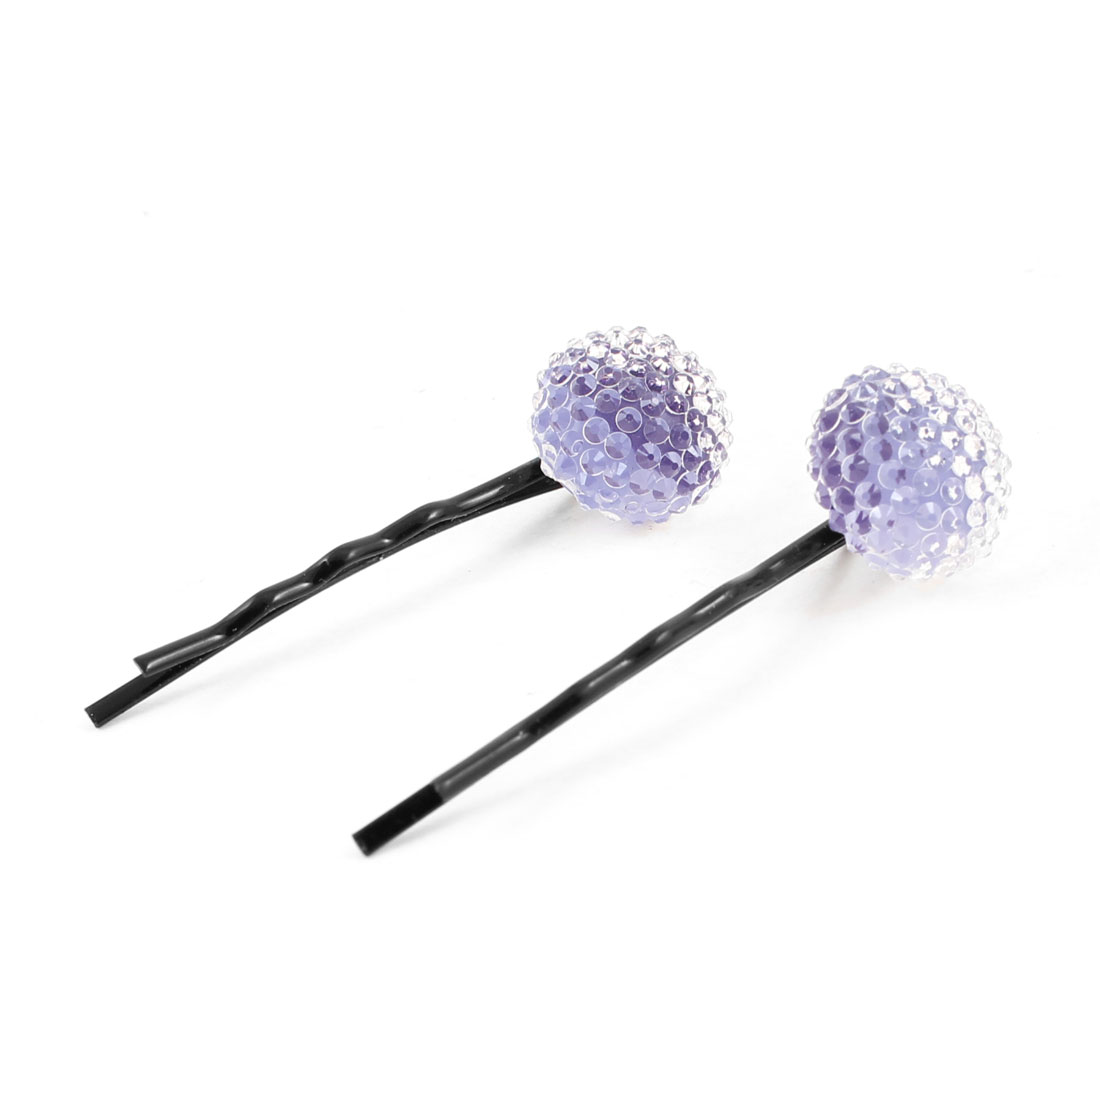 2 Pcs Woman Clear Purple Ball Decor Black Metal Bobby Pins Hair Grips Hairclips